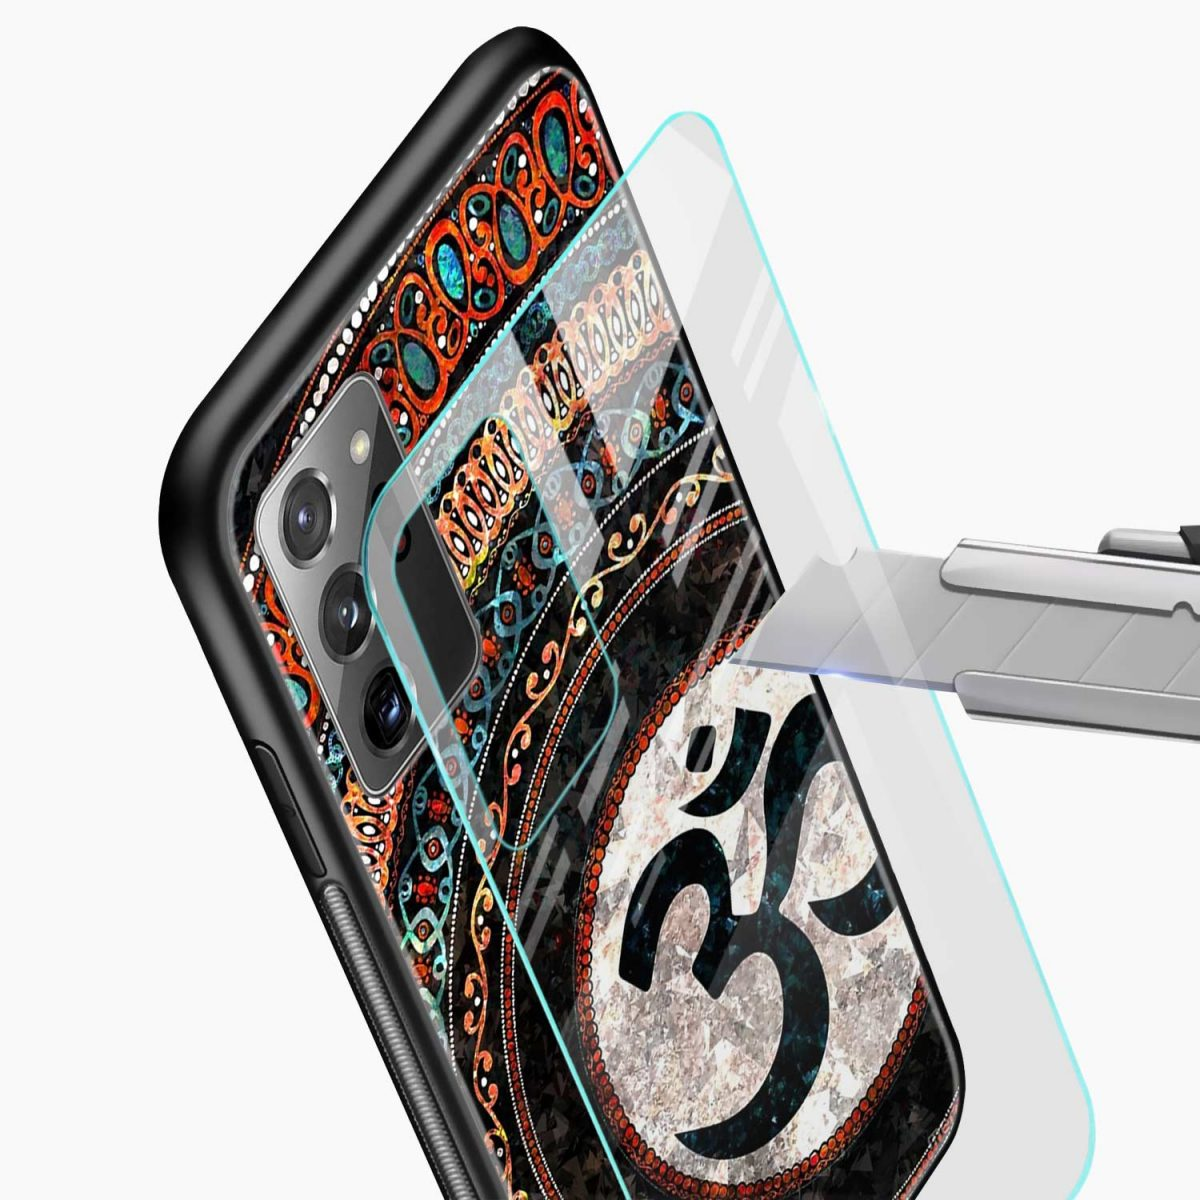 om glass glass view samsung galaxy note20 ultra back cover